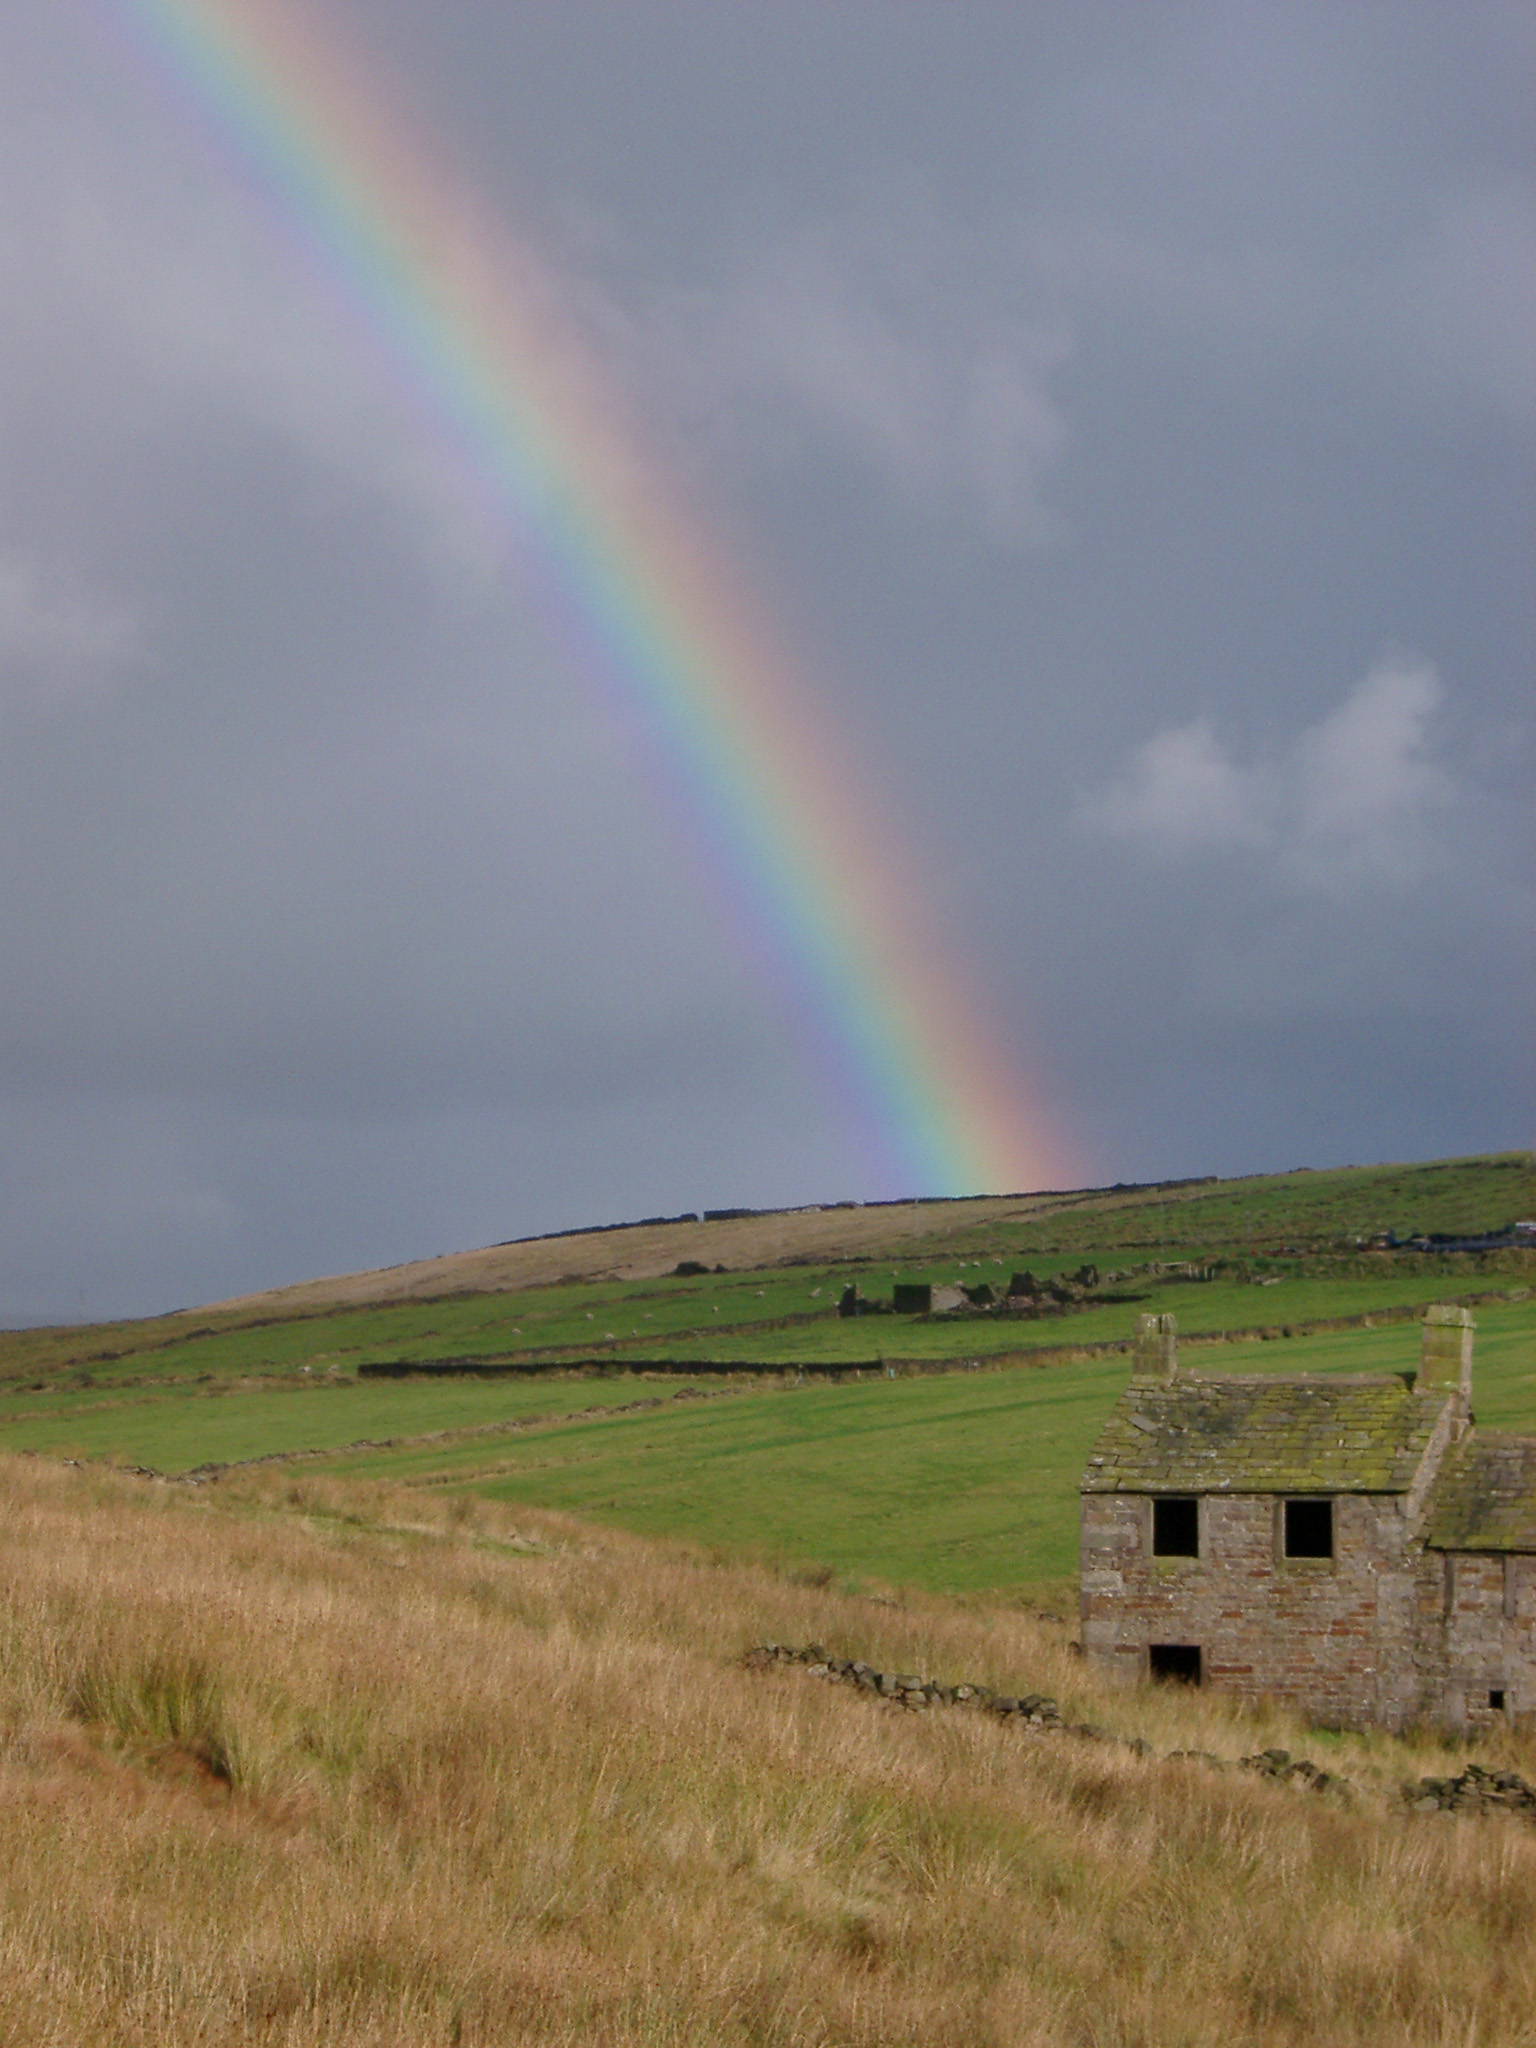 Ruins on an old farm house on a grassy moorland, Captured with Rainbow in the Sky.